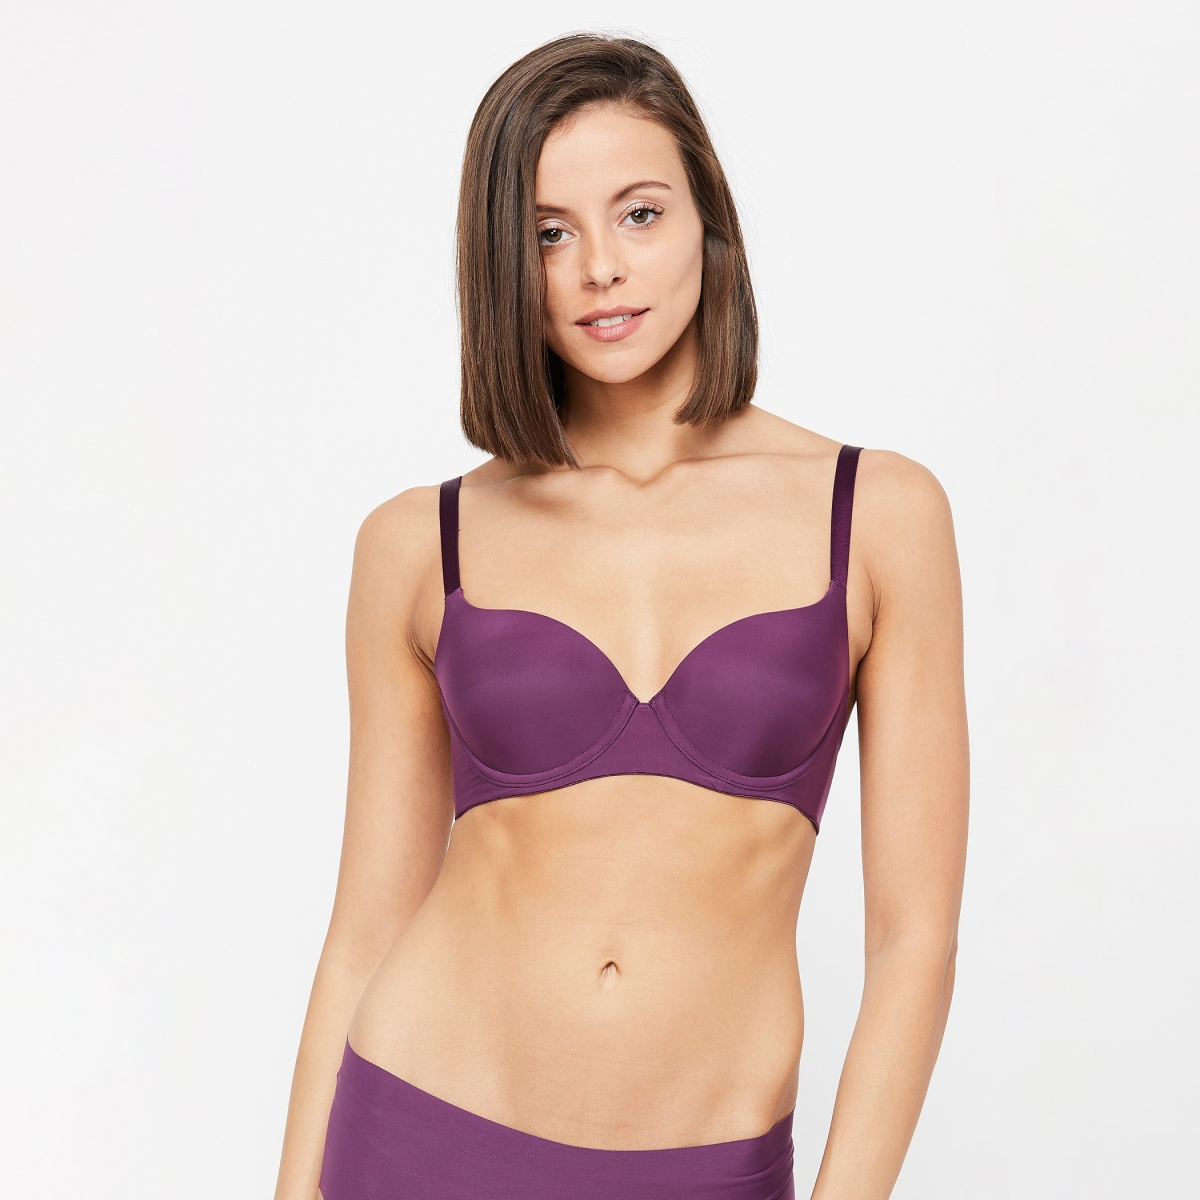 TRIUMPH-Underwired-T-shirt-Bra